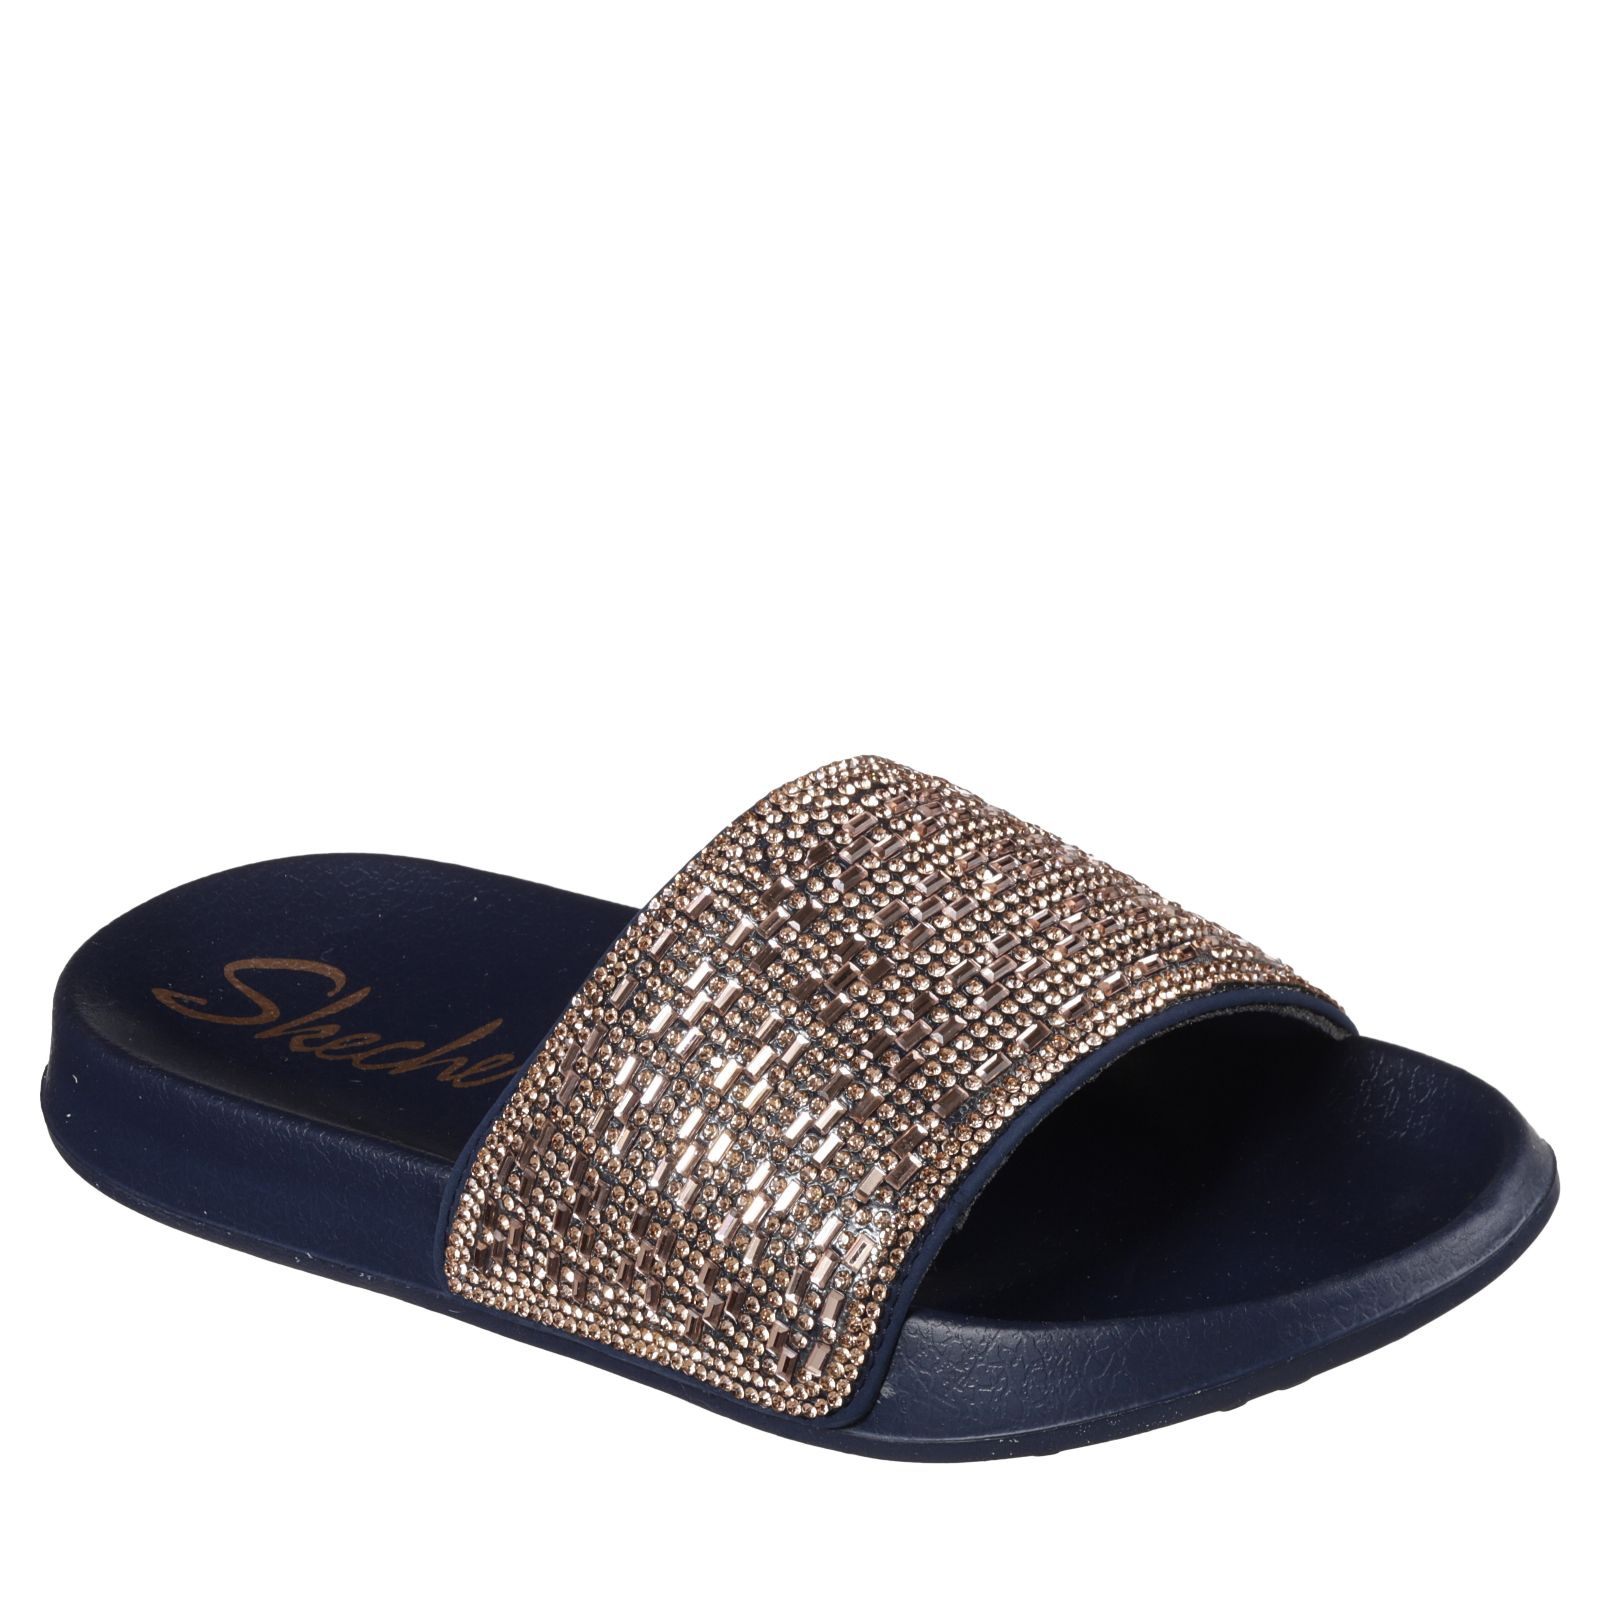 cc1cba1f40b1 Skechers 2nd Take Summer Chic Rhinestone Slide Sandal - QVC UK